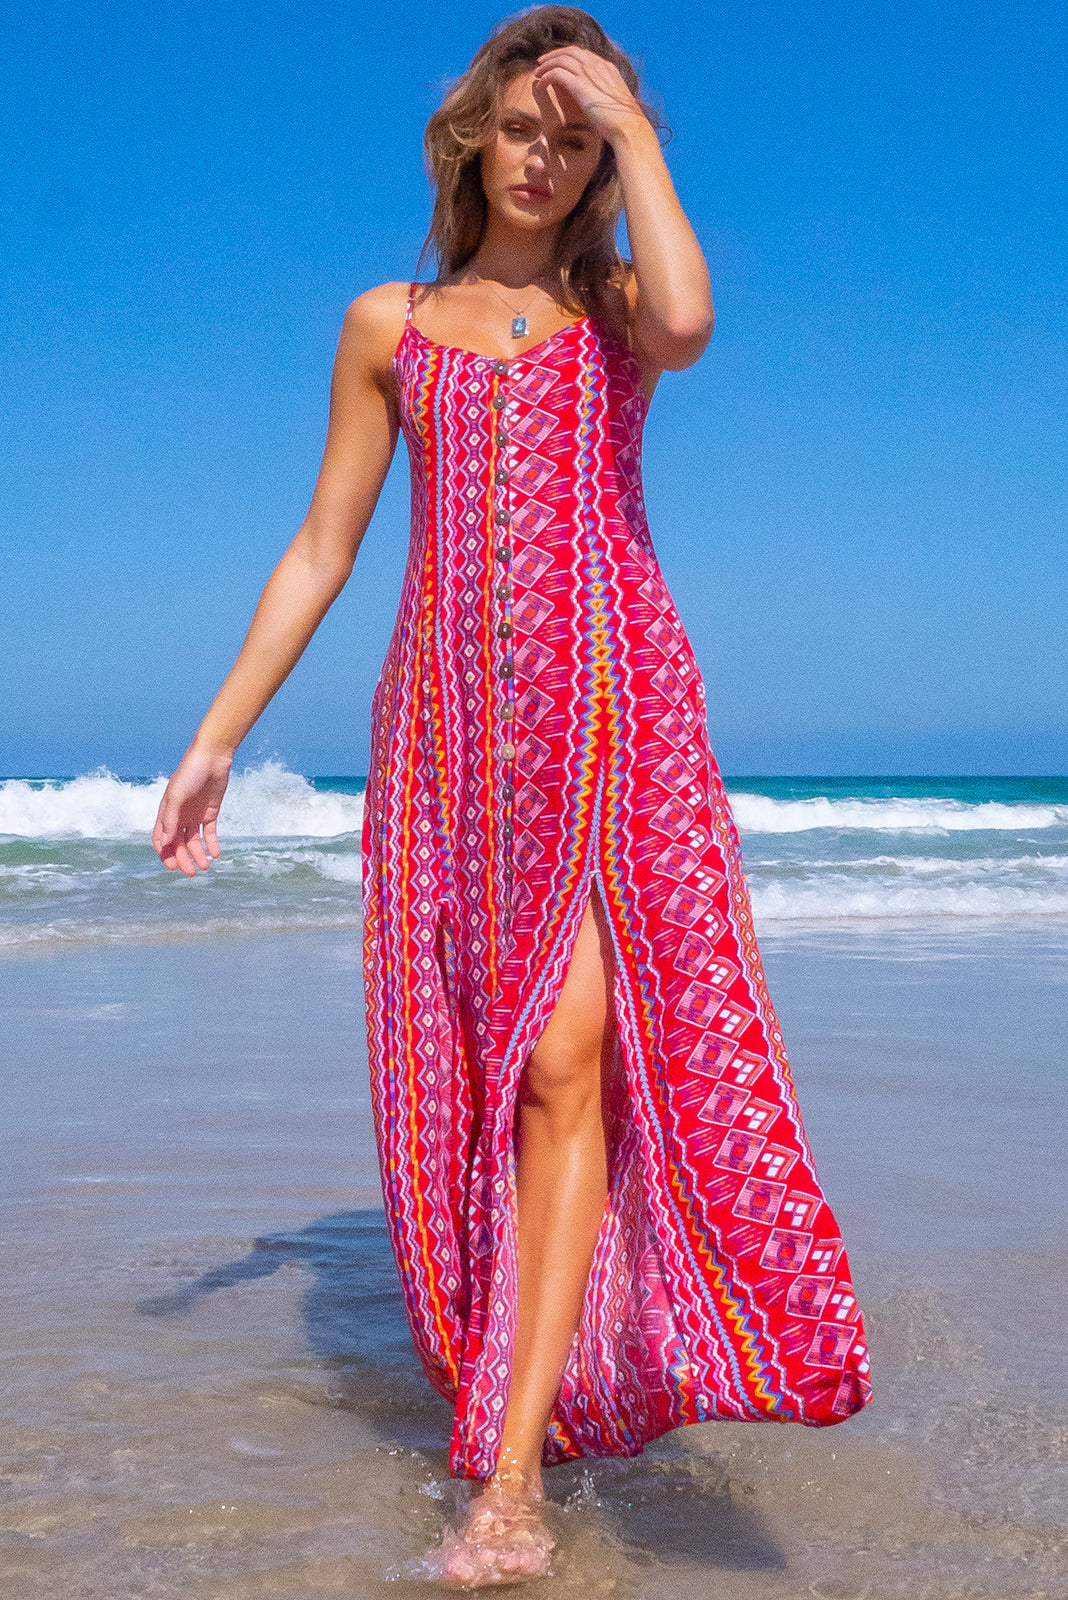 The Luella Mexicali Red Stripes Maxi Dress features coconut shell buttons down the front, scooped neckline, adjustable spaghetti straps, streamlined cut, front opening and two splits at the front sides of skirt, side pockets and 100%b viscose in red, retro aztec inspired stripe print.